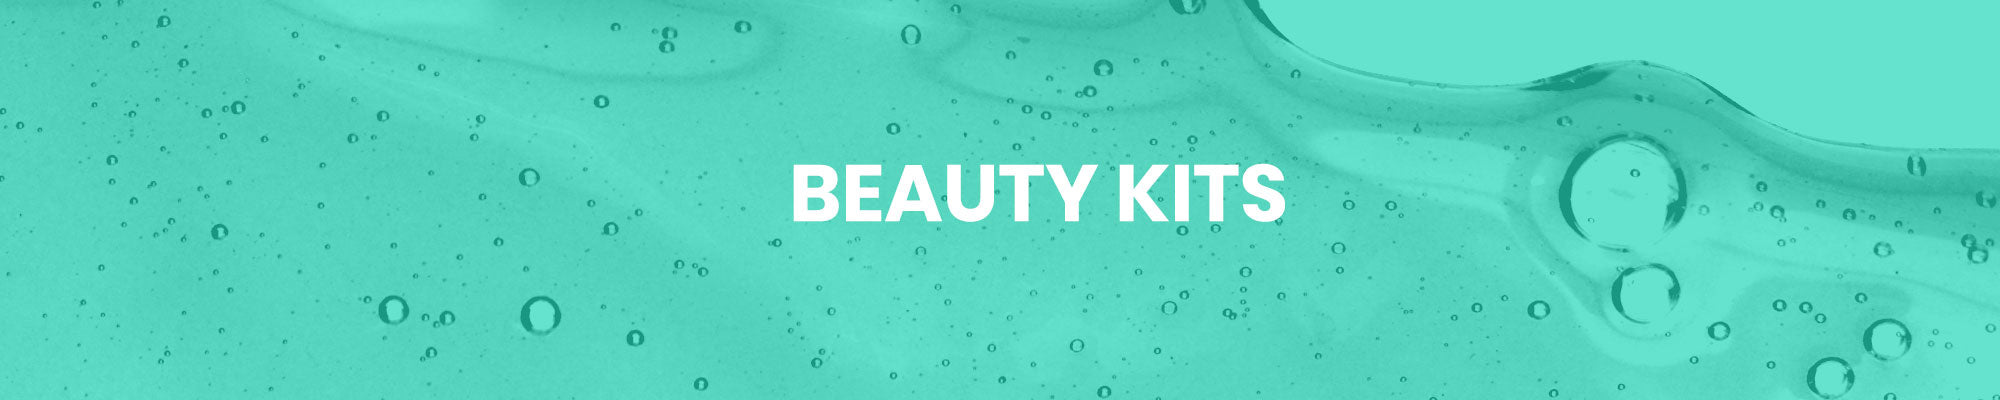 BEAUTY KITS